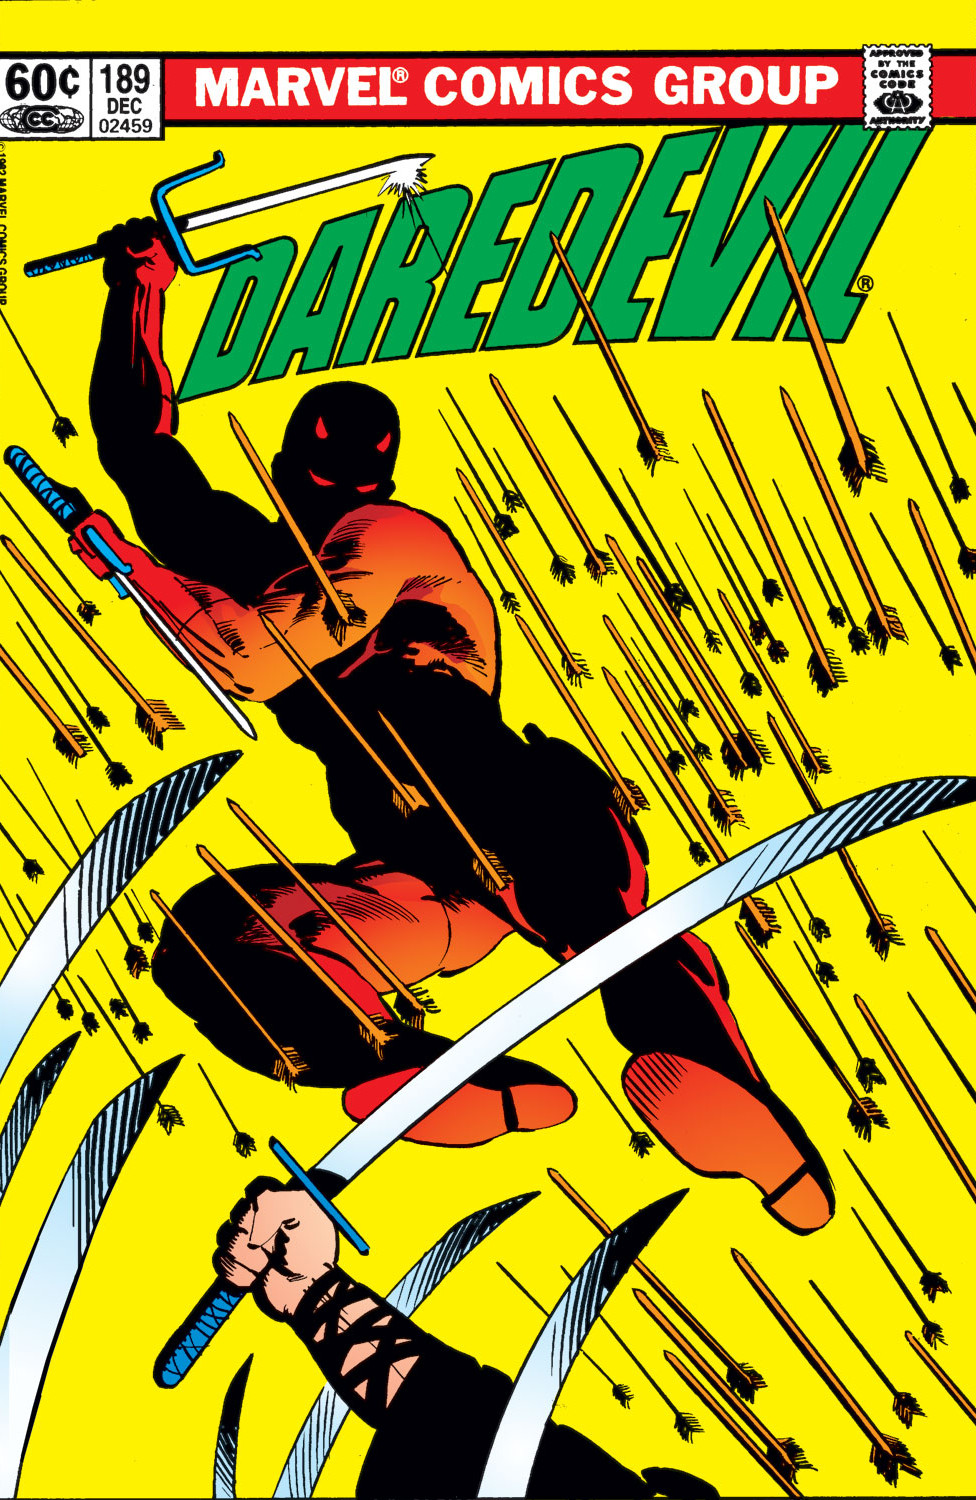 Daredevil Vol 1 189